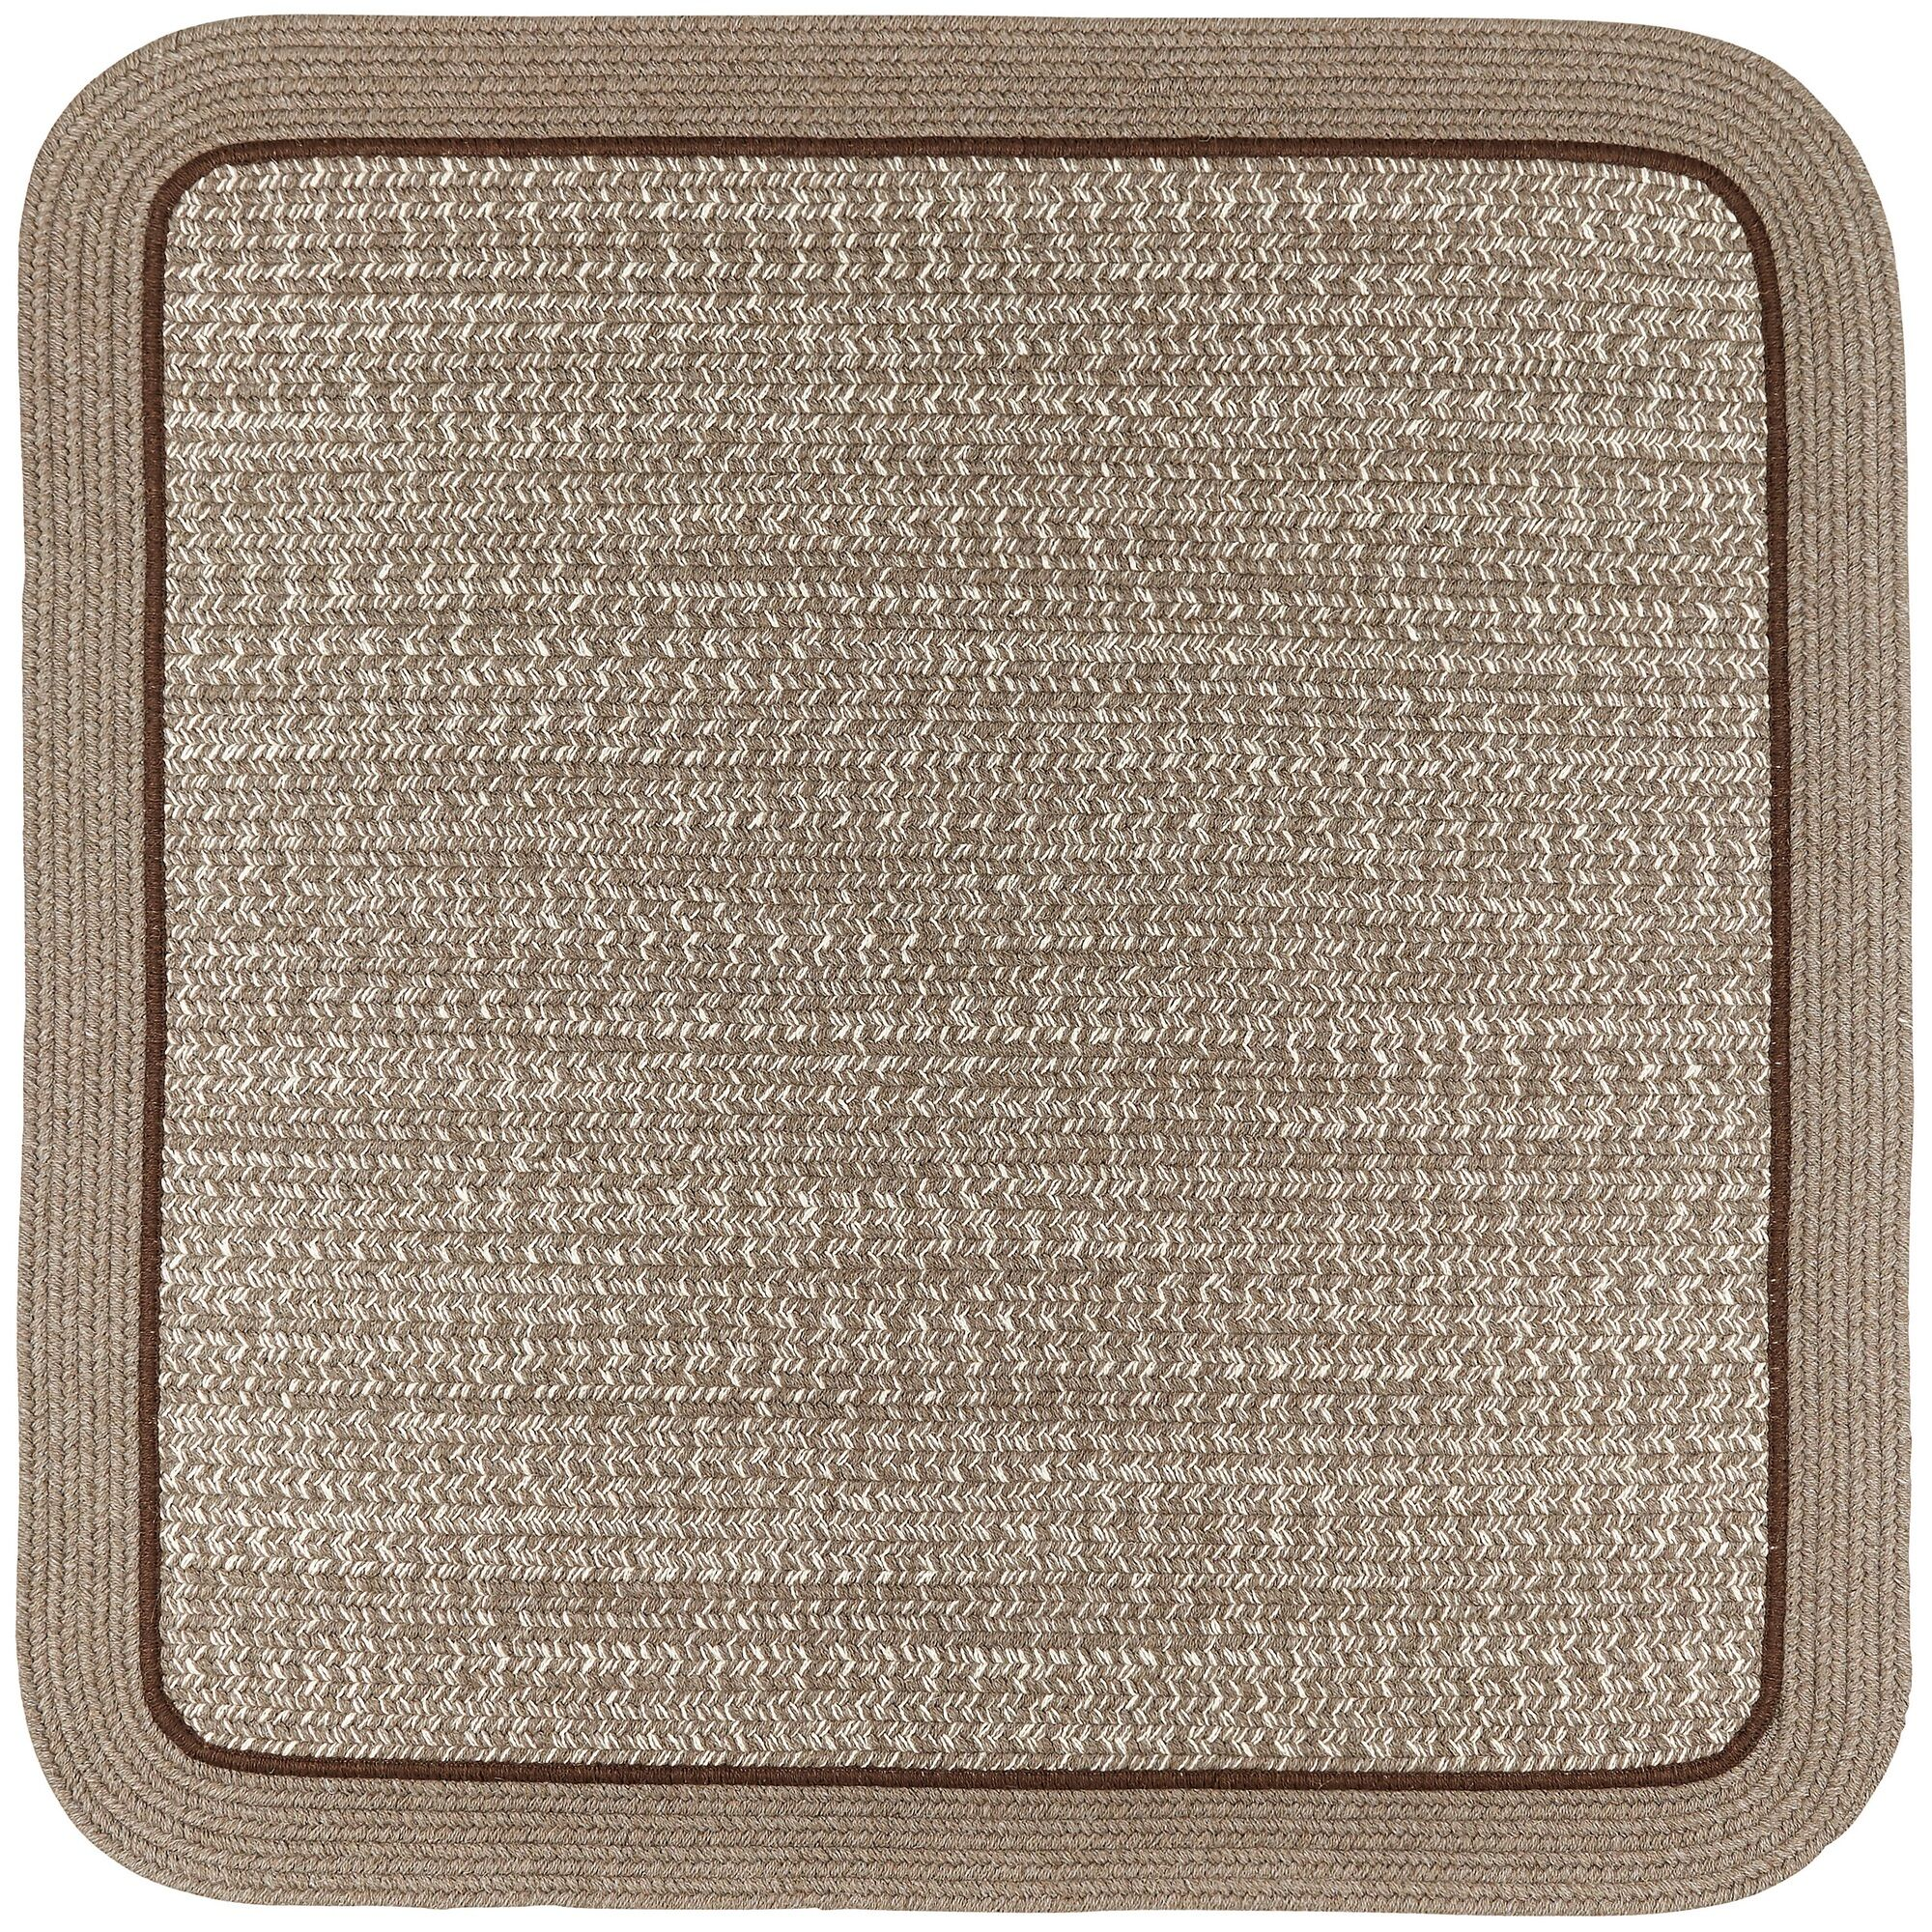 Browdy Banded Mocha Area Rug Rug Size: Rectangle 7' x 9'